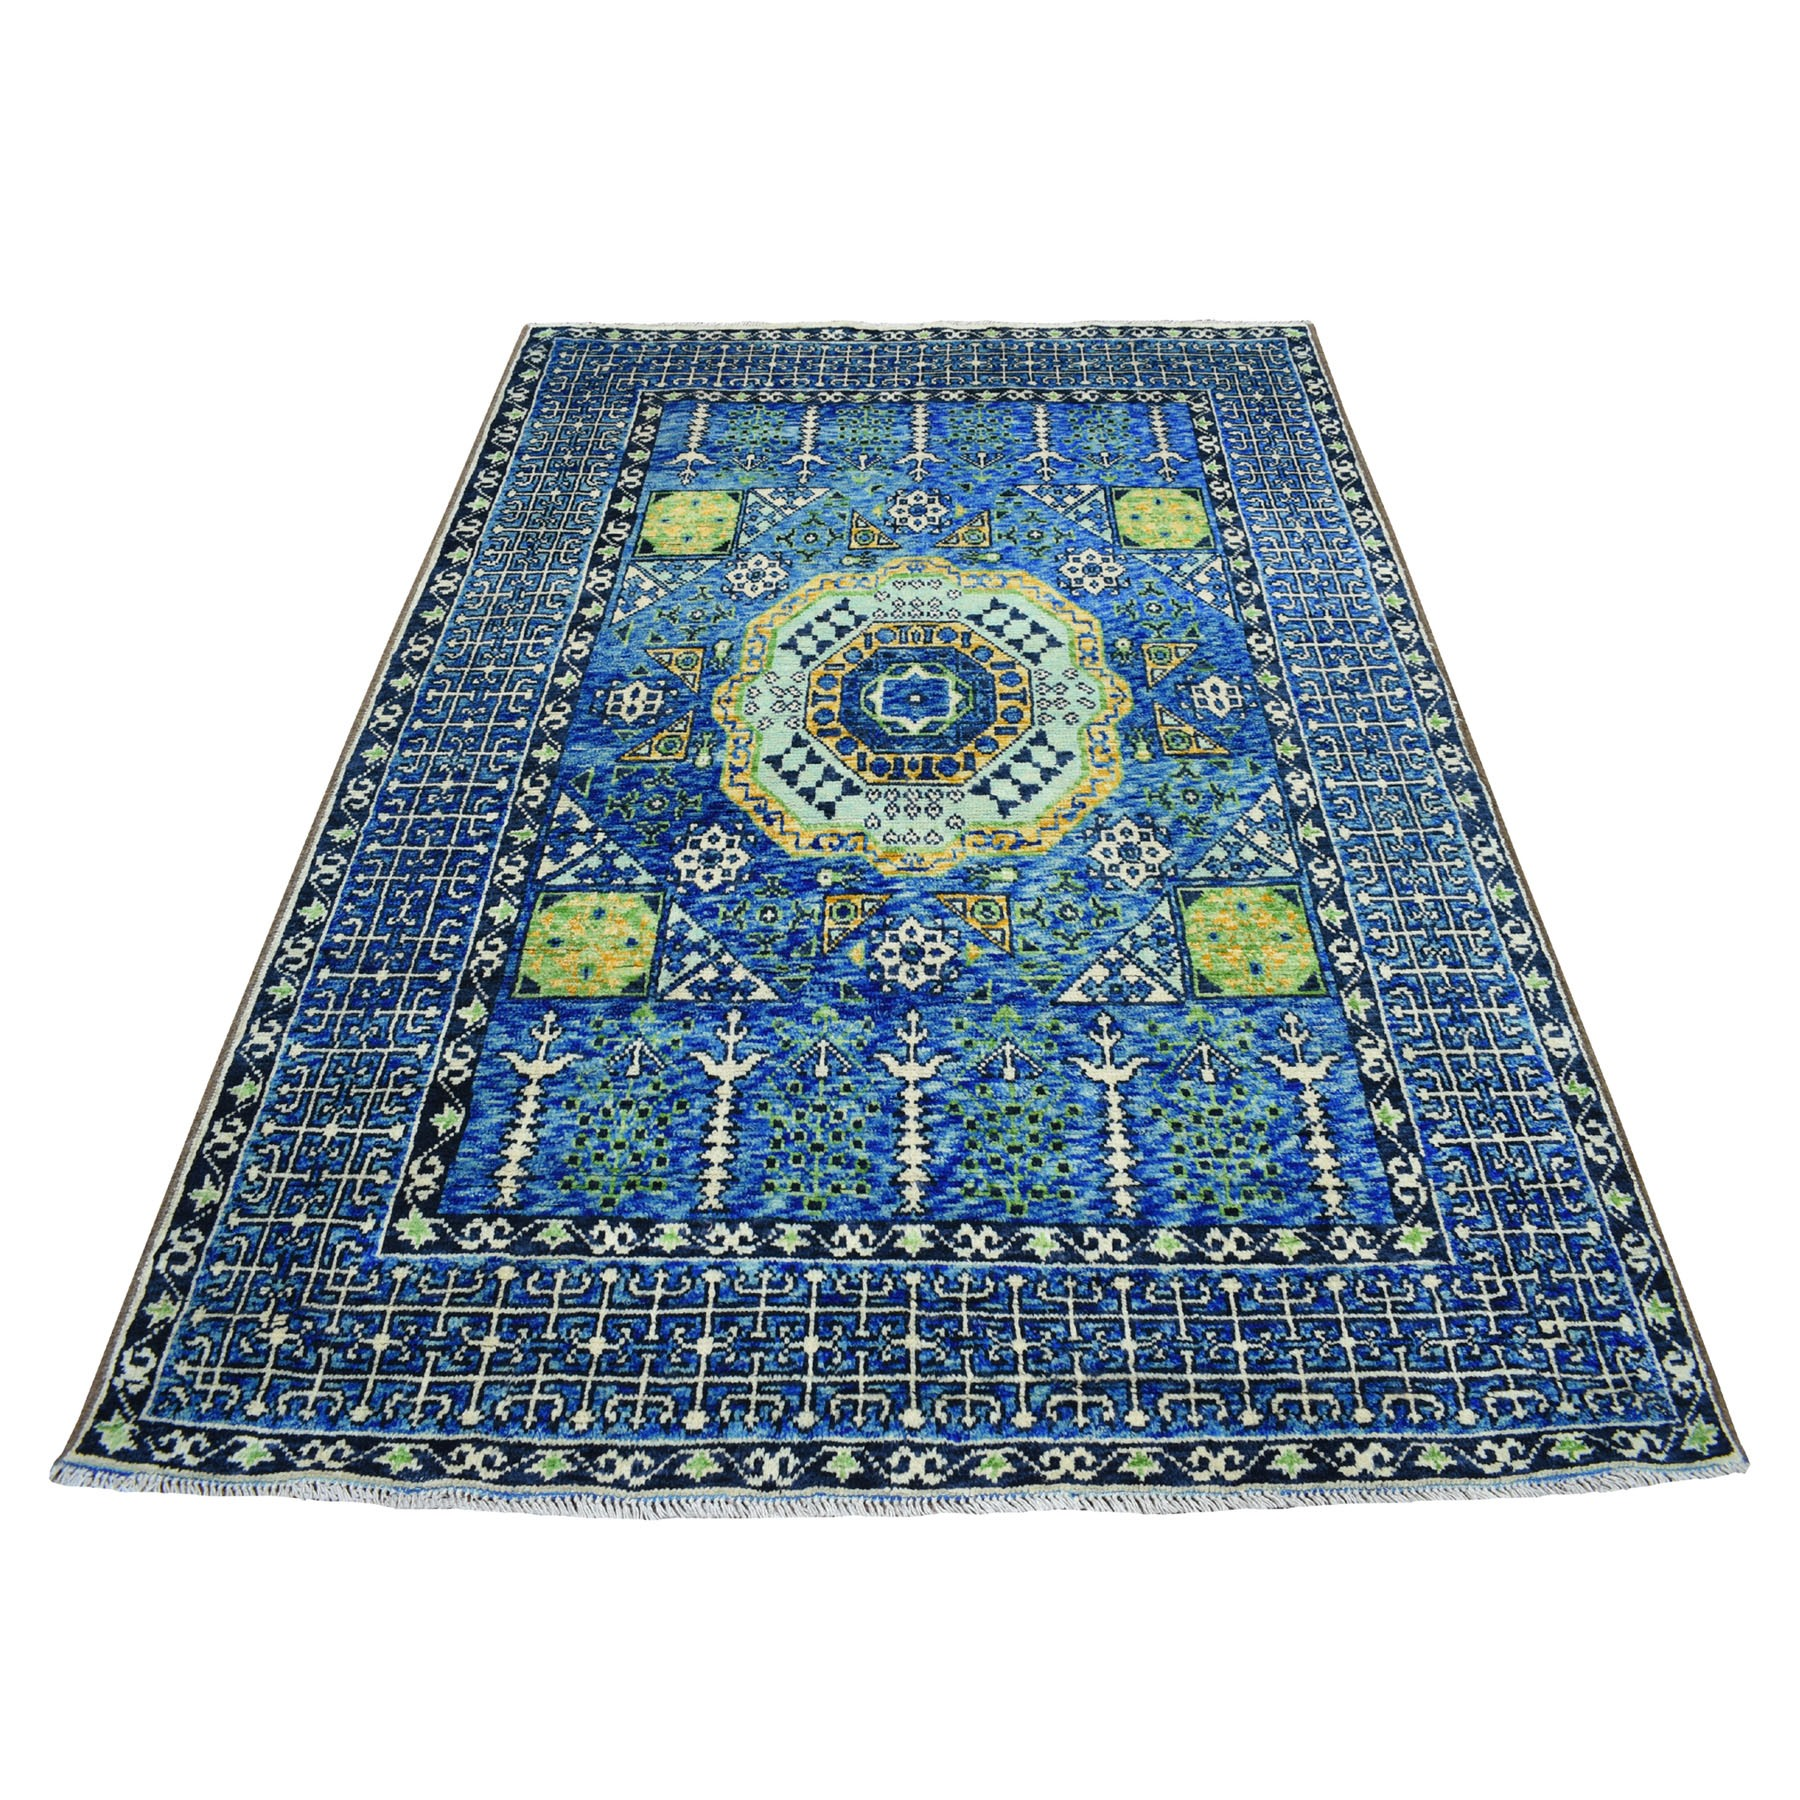 "5'5""x7'9"" Blue Mamluk Design Colorful Afghan Baluch Hand Knotted Pure Wool Oriental Rug"